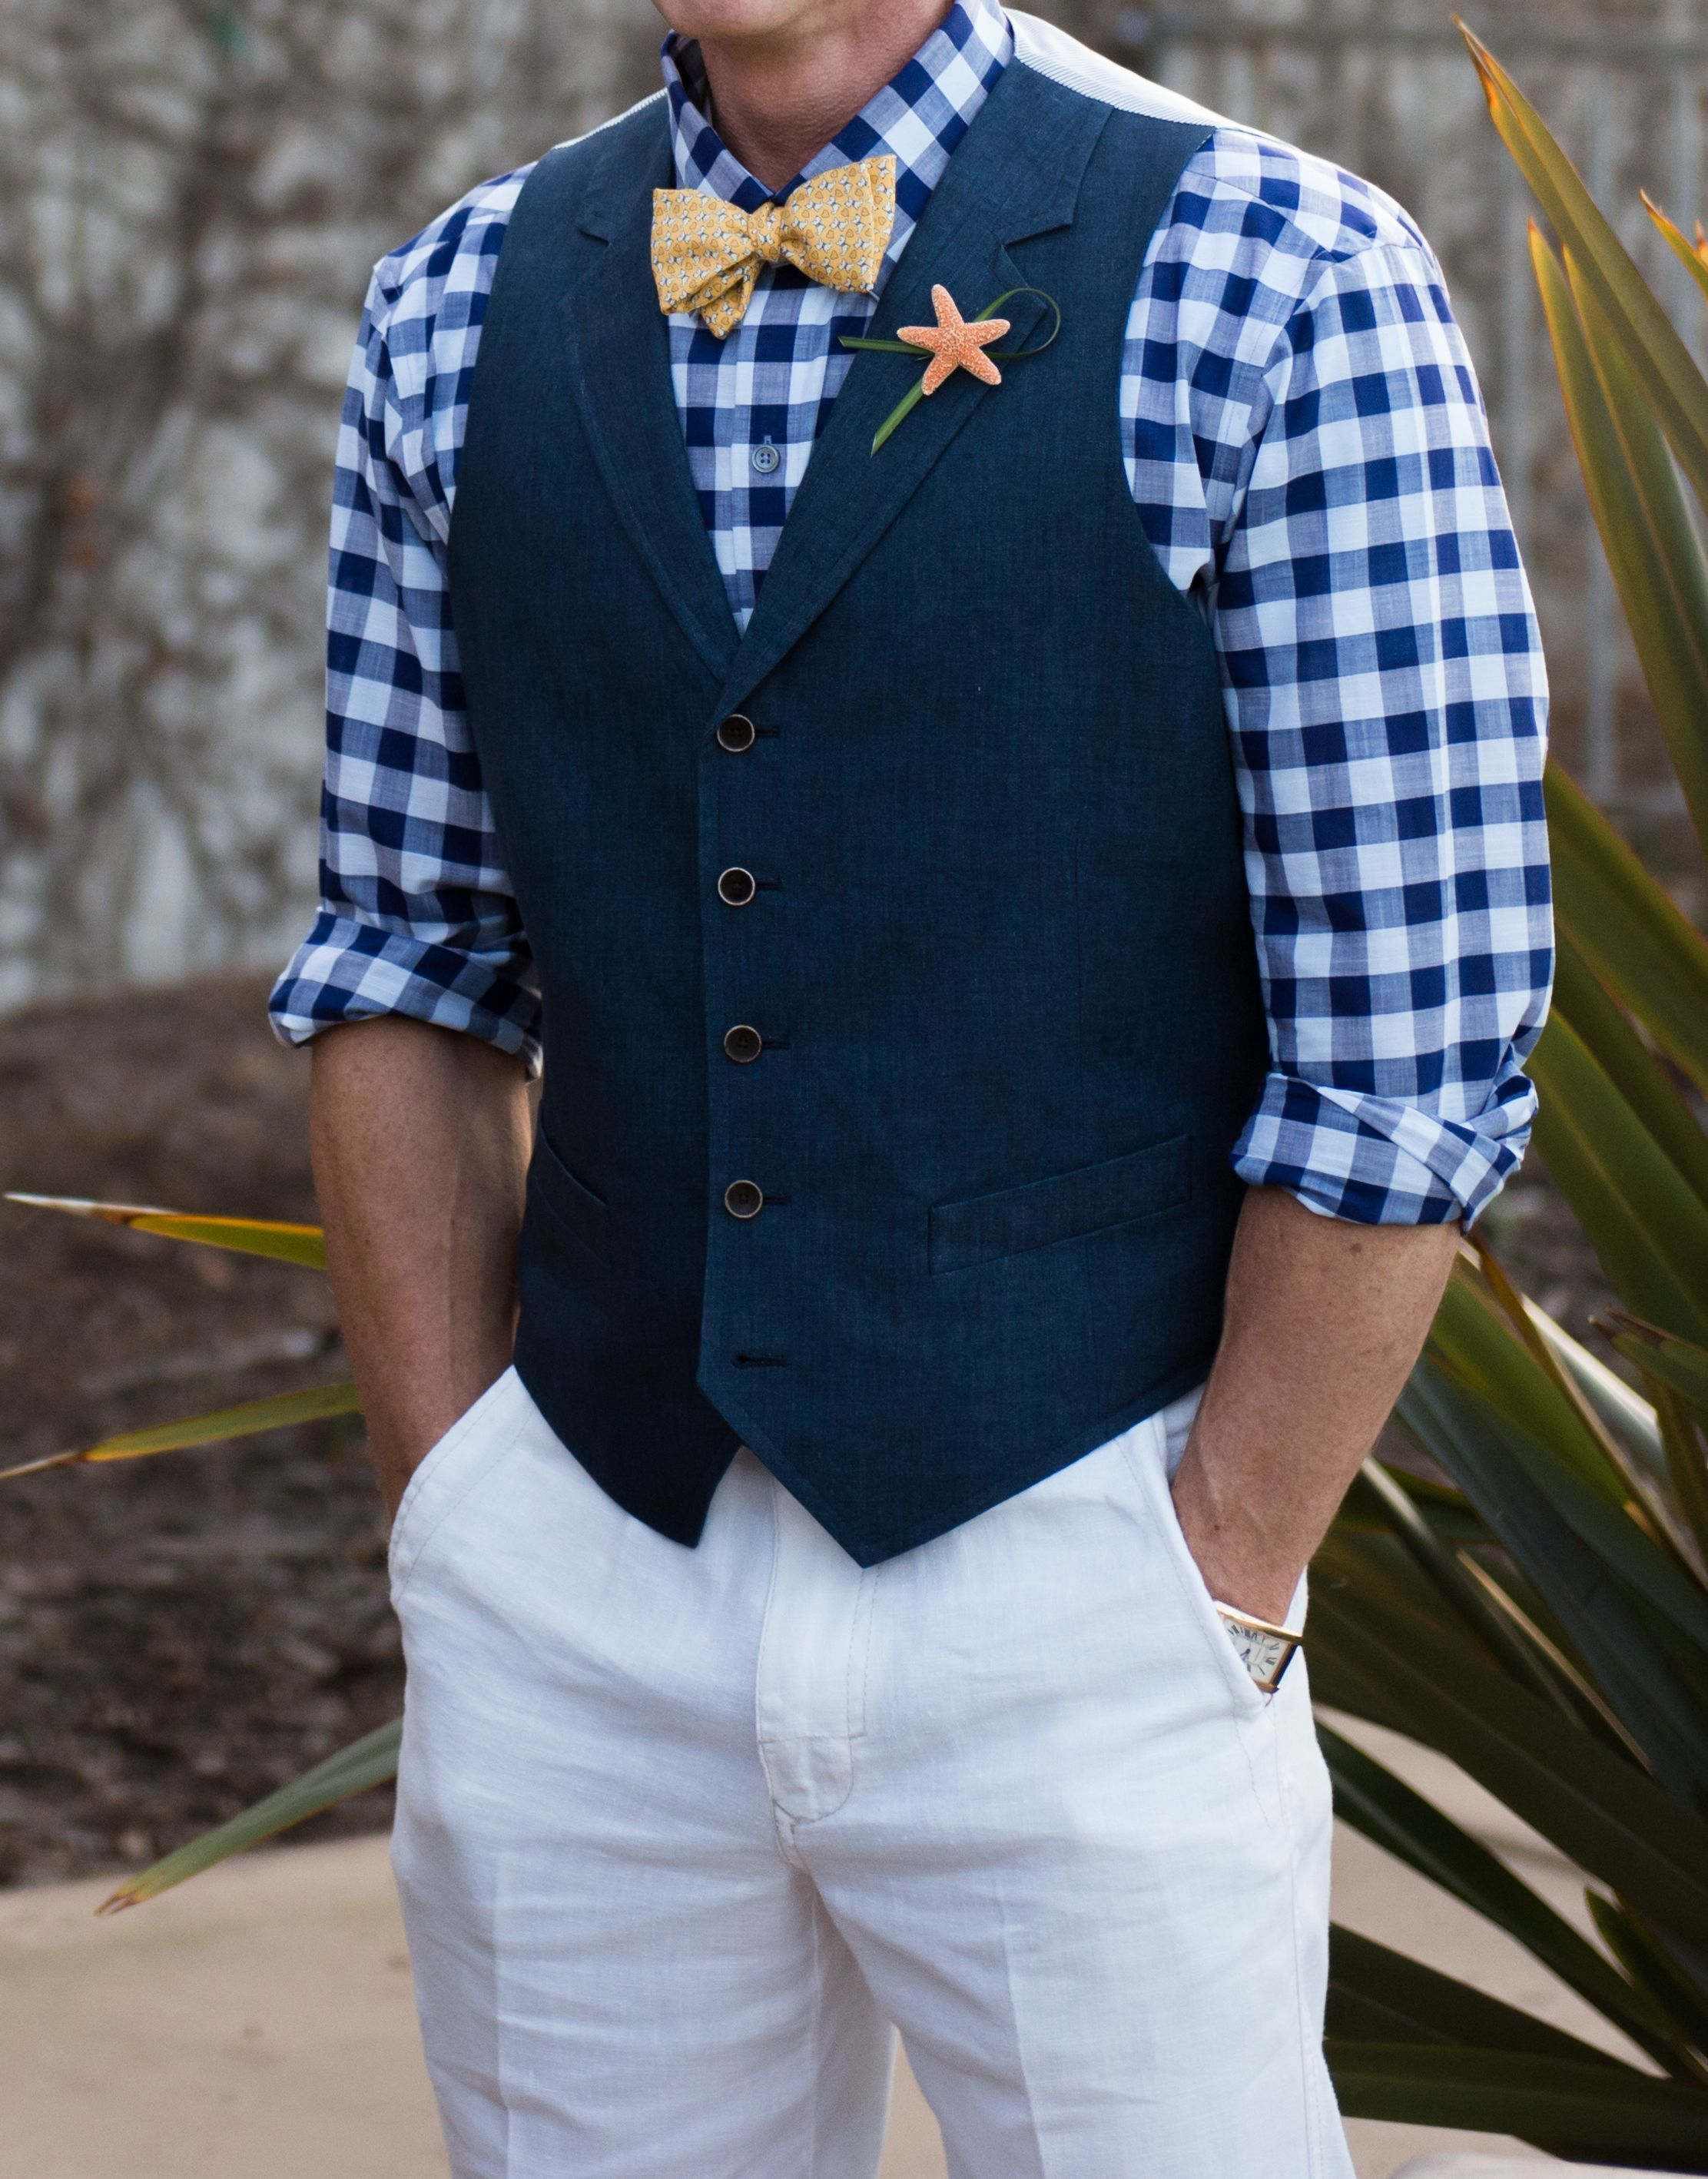 Image result for attire for casual, summer outdoor wedding